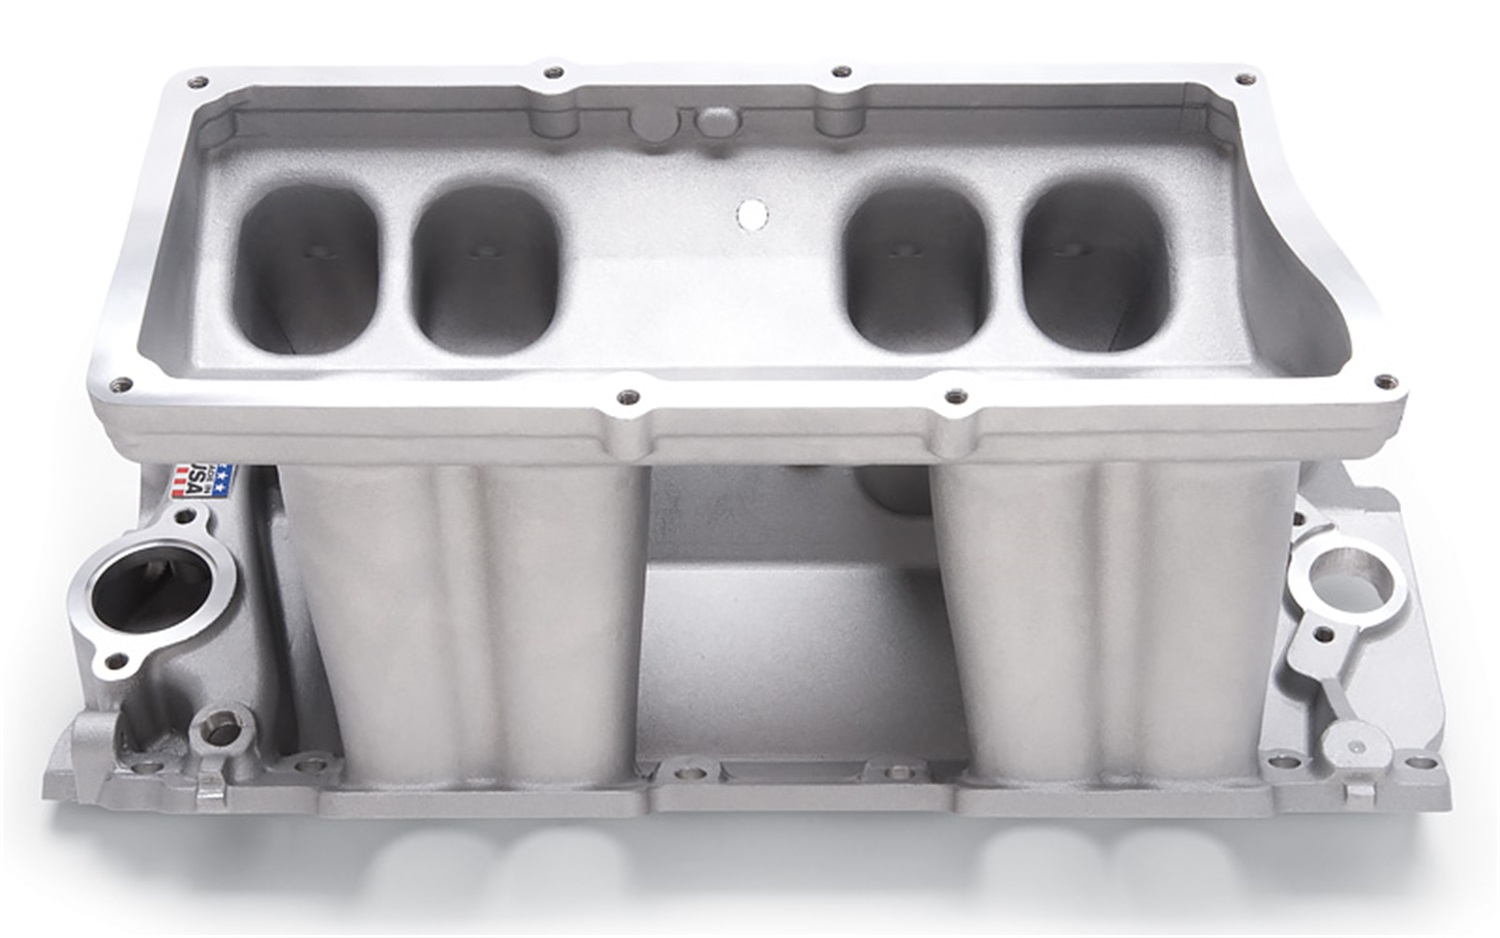 EDELBROCK 7085 Victor Tunnel Ram  Base Only  For Carbureted Applications  Big Block Chevy at Sears.com